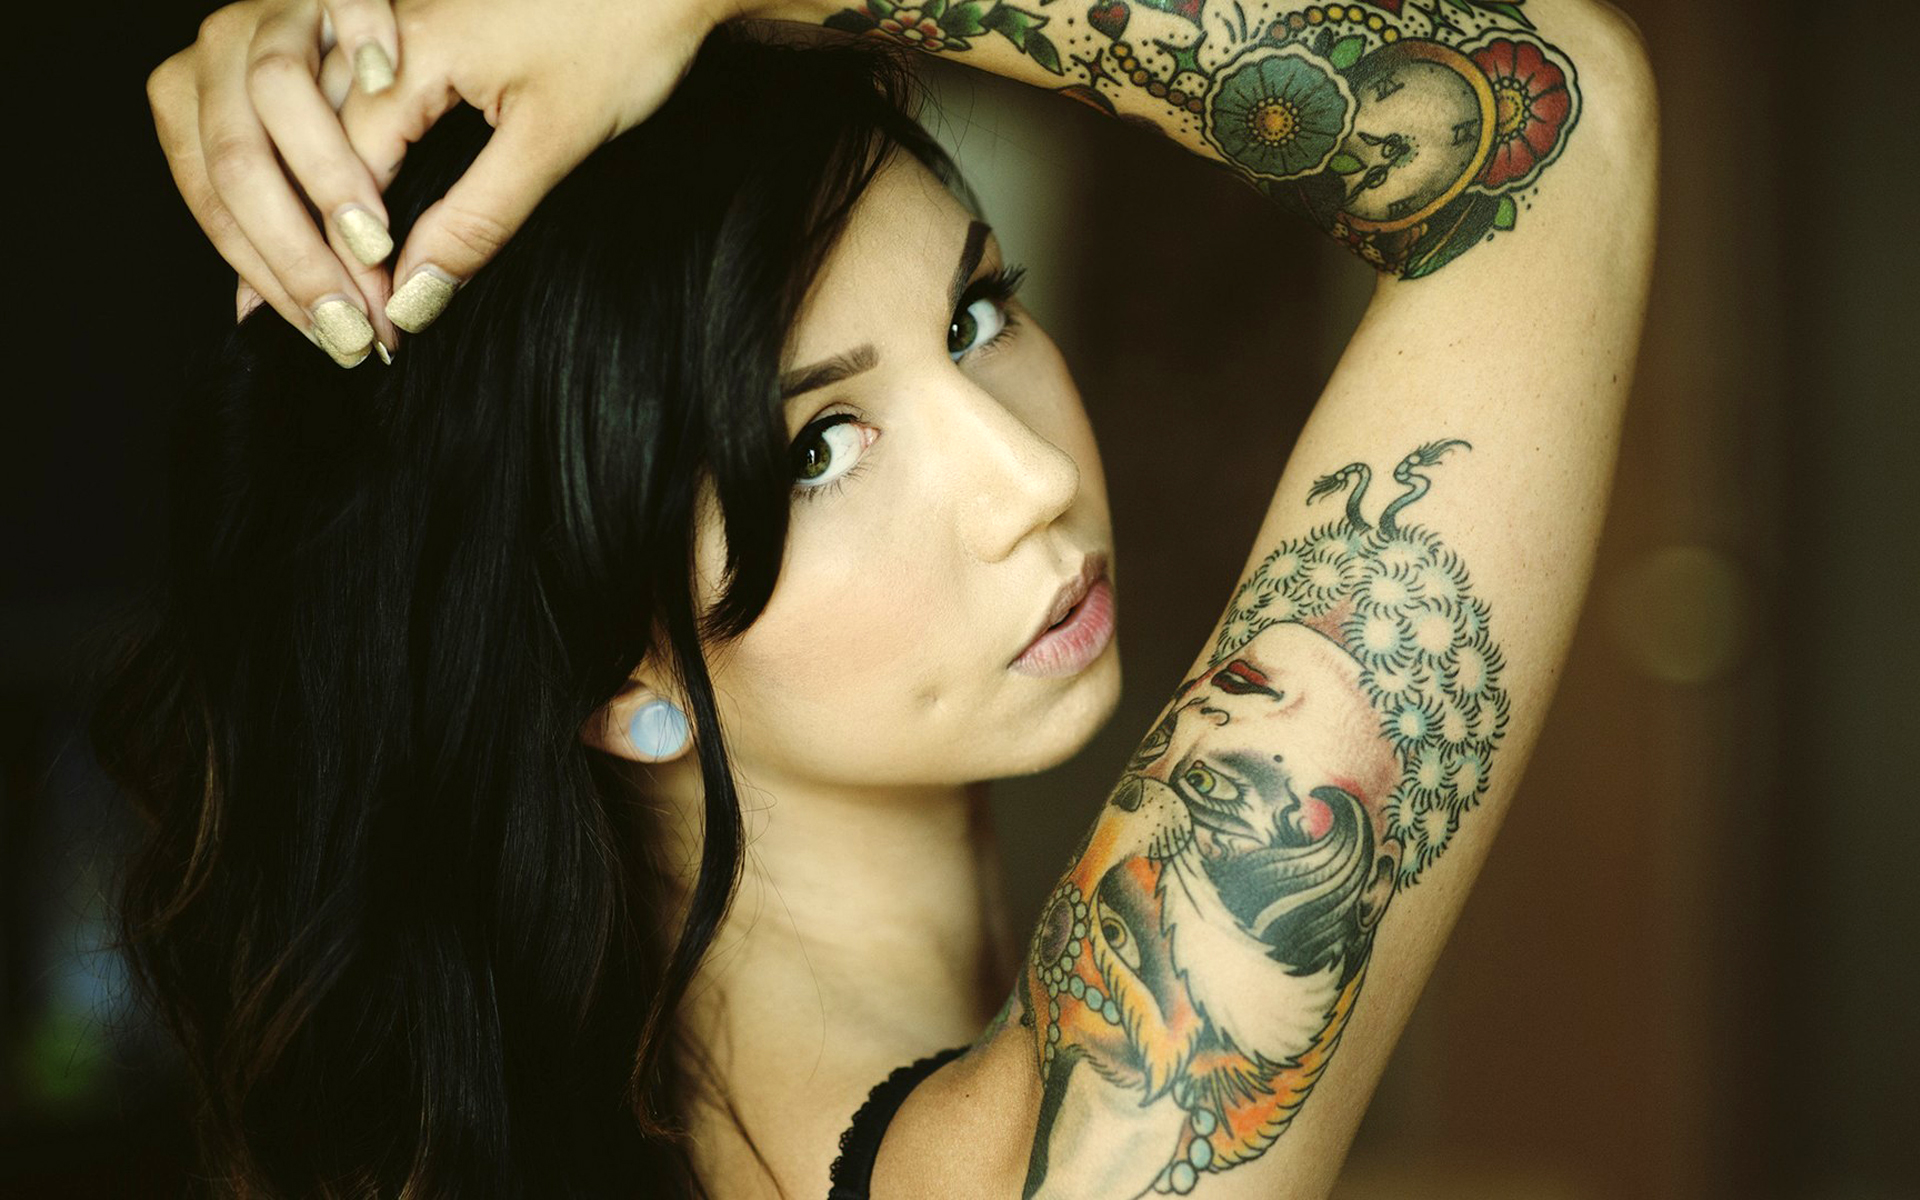 Tattoo Girl Wallpaper HD - WallpaperSafari